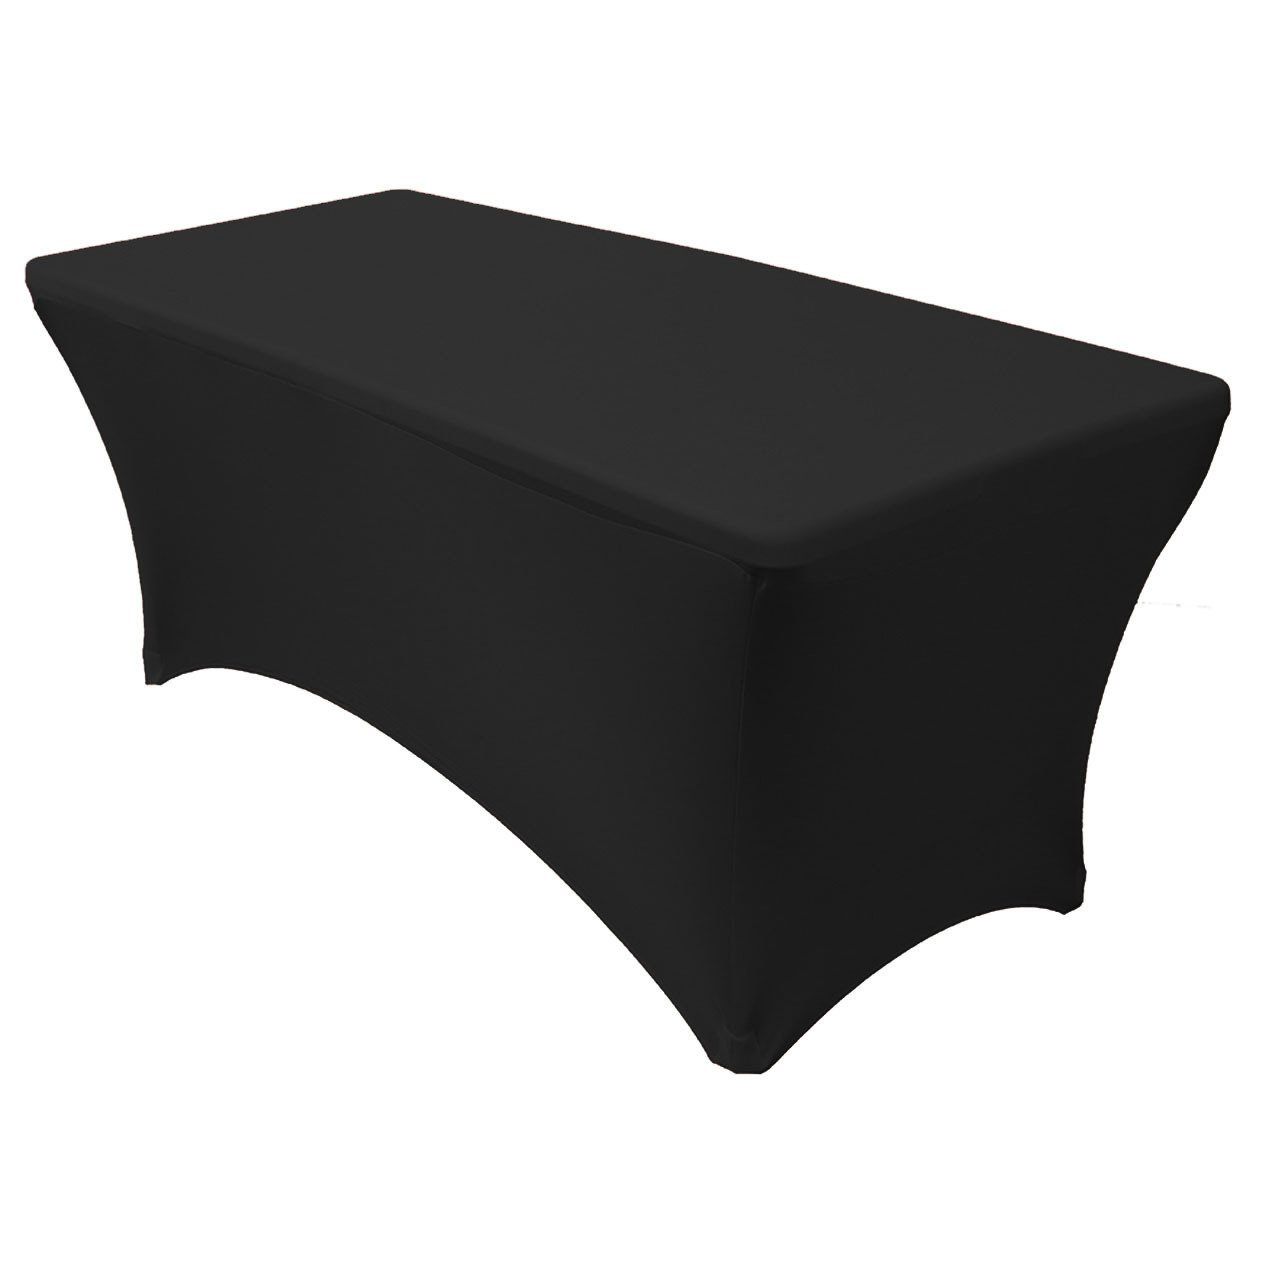 Your Chair Covers - 8 ft Rectangular Fitted Stretch Spandex Table Cover for 96'' Length x 30'' Width x 30'' Height Fitted Tablecloth for Standard Folding Tables - Black